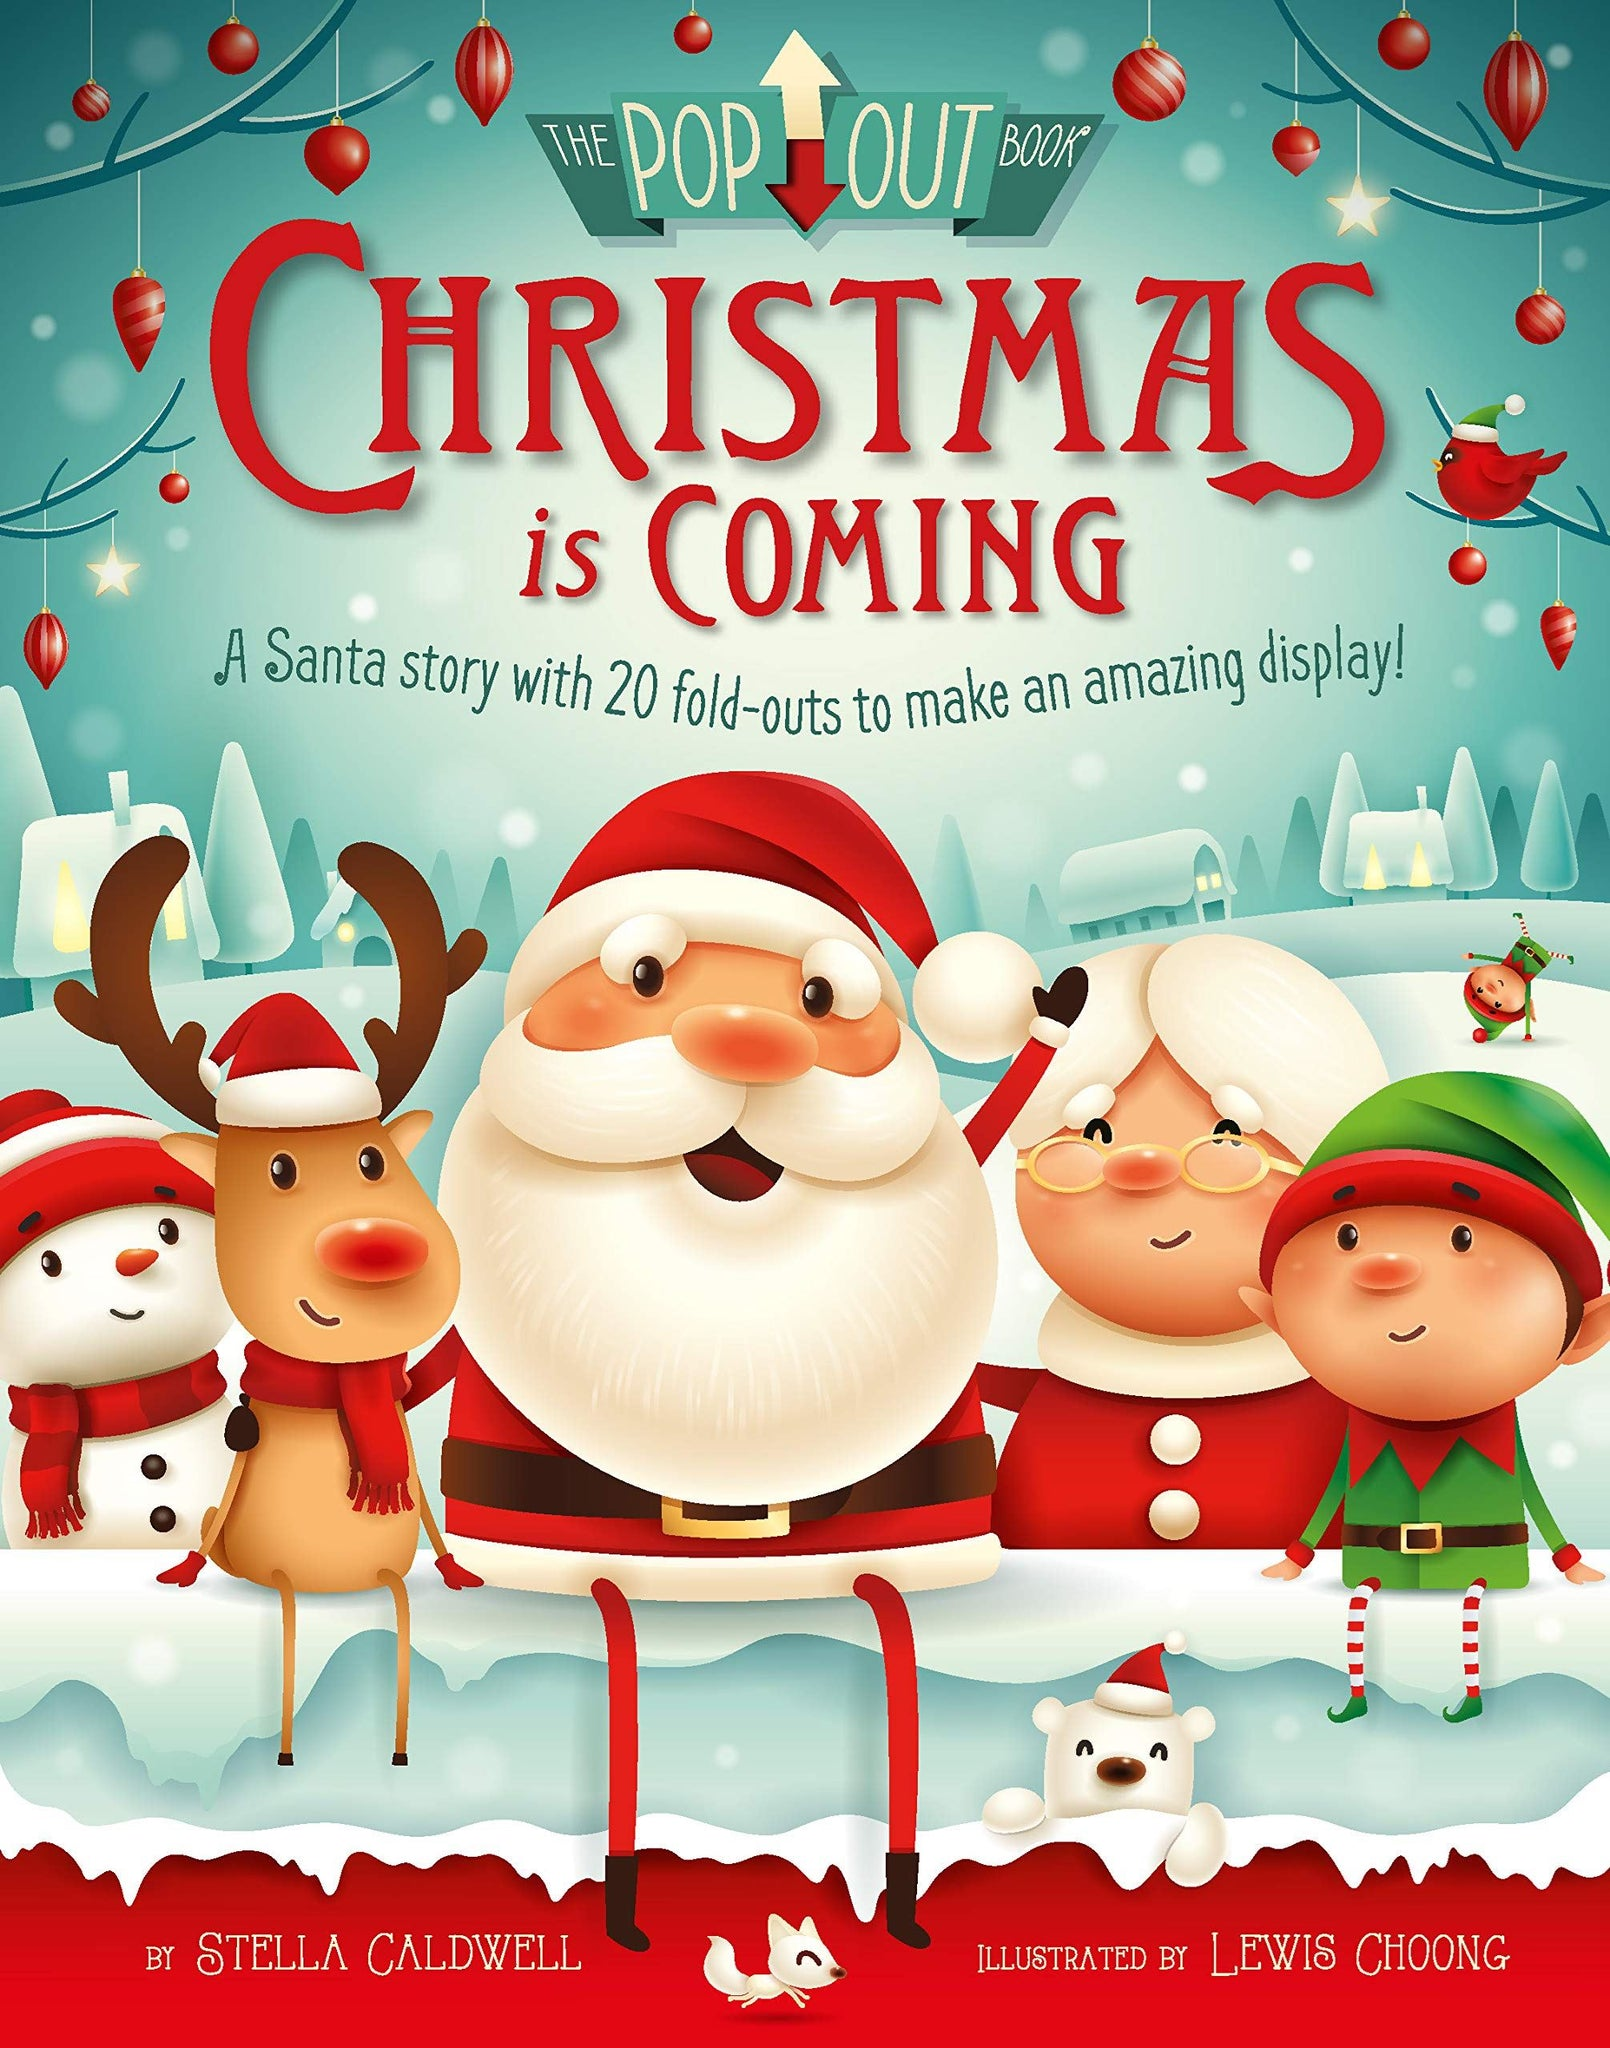 Christmas is coming - pop-out book